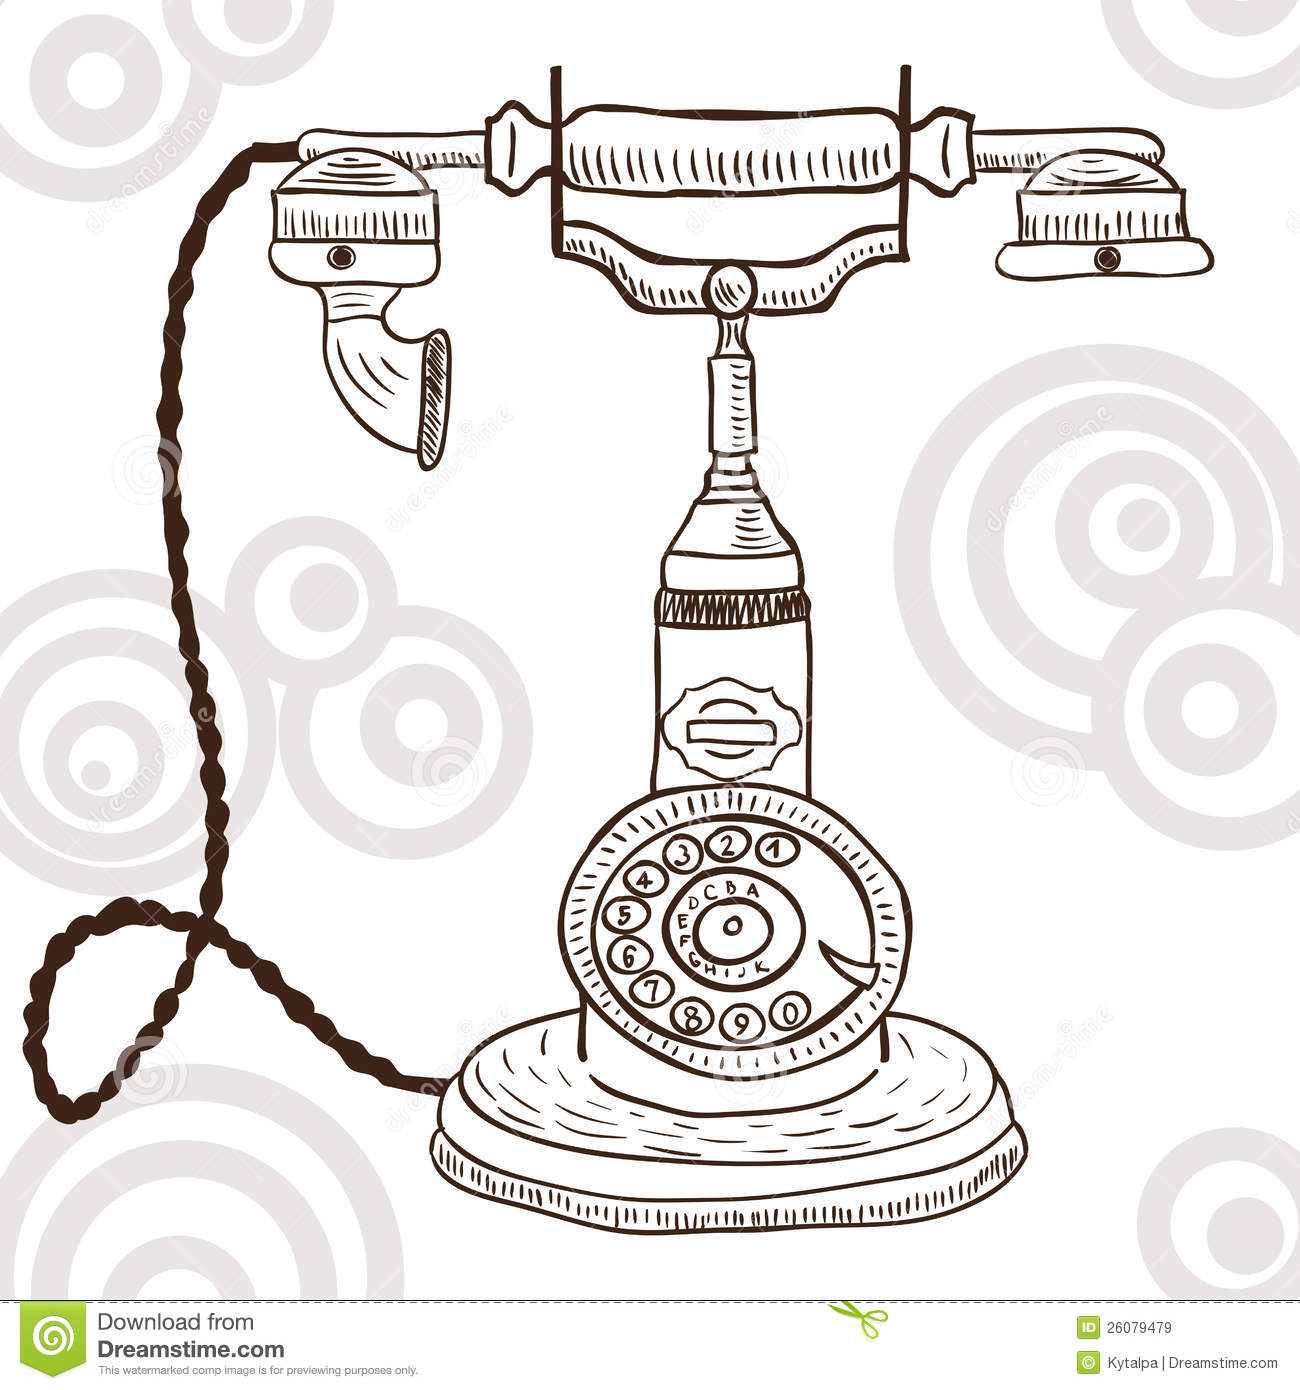 Old vintage telephone - retro illustration  doodle style Vintage Telephone Illustration